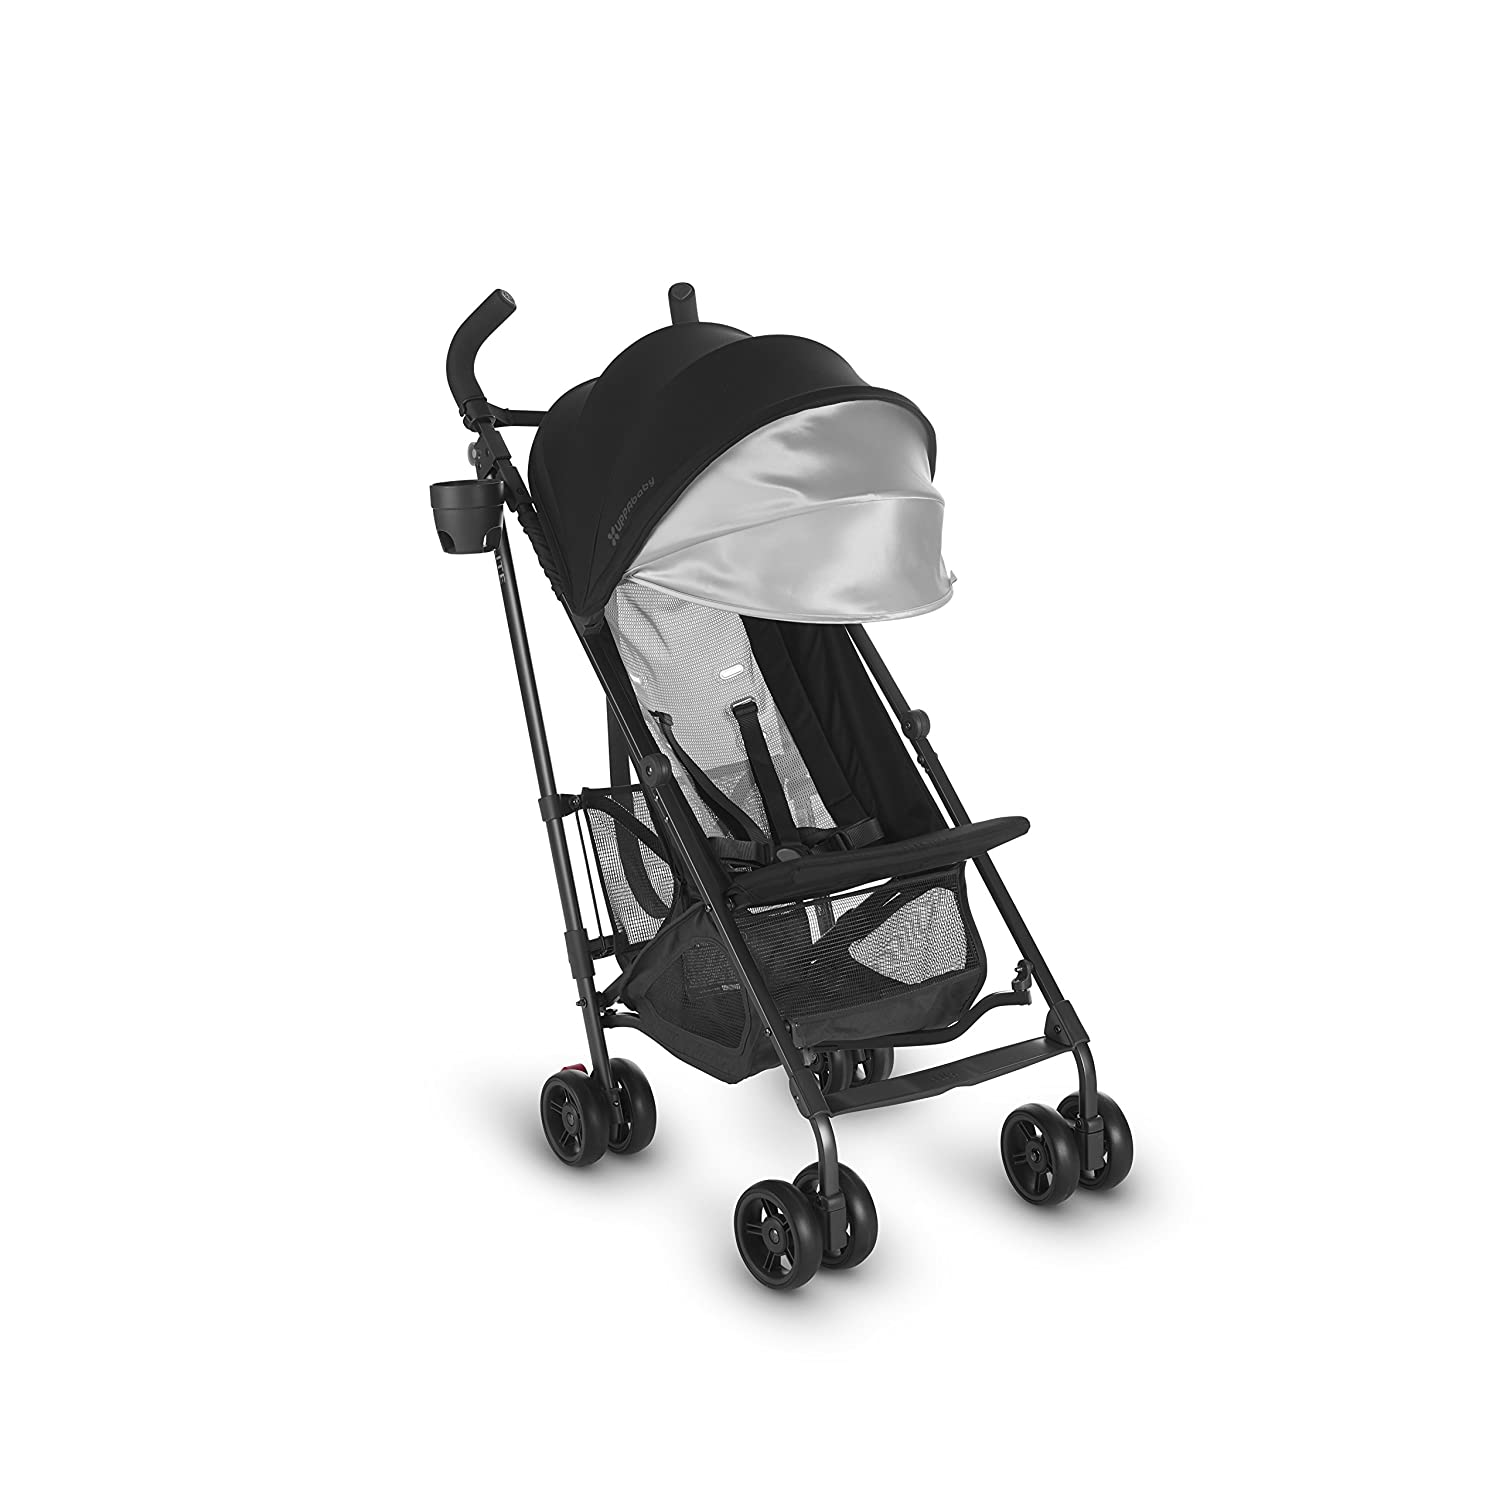 81bmuiYvwLL. SL1500 15 Best Umbrella Strollers for 2021 [Picked by Parents]